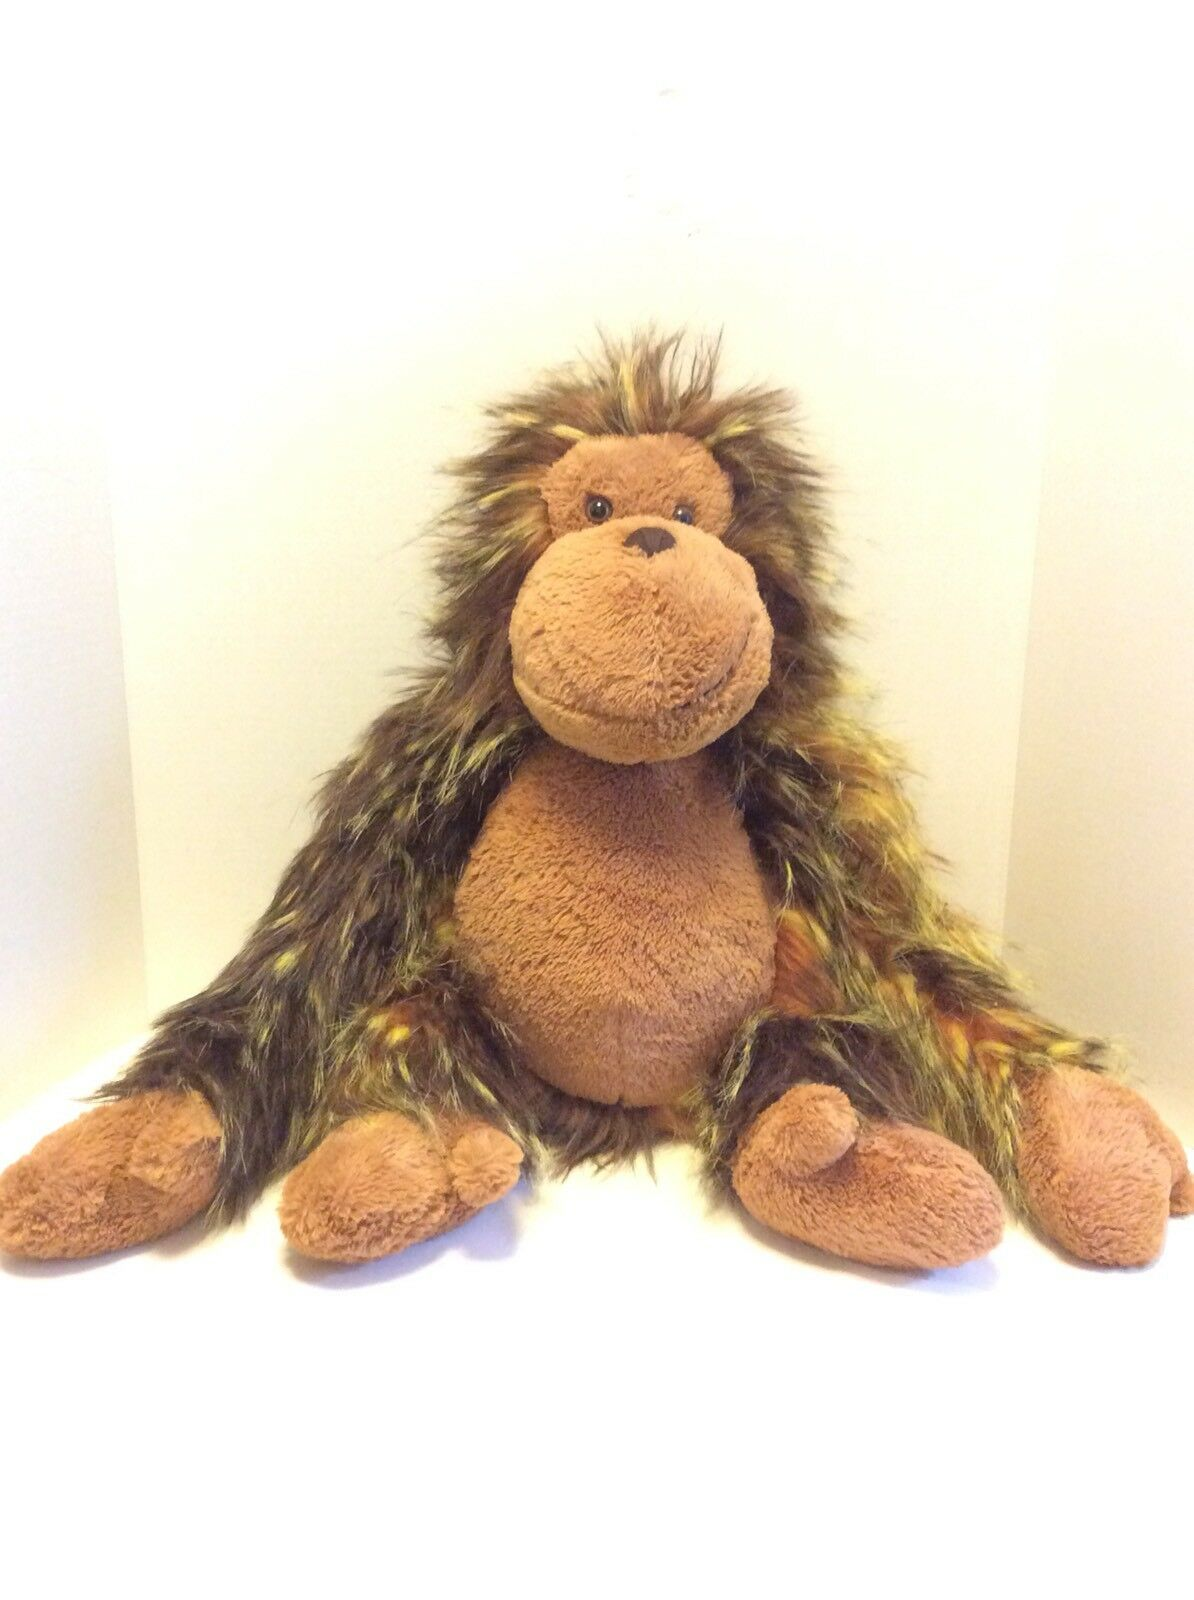 Jellycat Oscar The Orangutan Ape 22in Furry Large Plush Stuffed Animal Gorilla